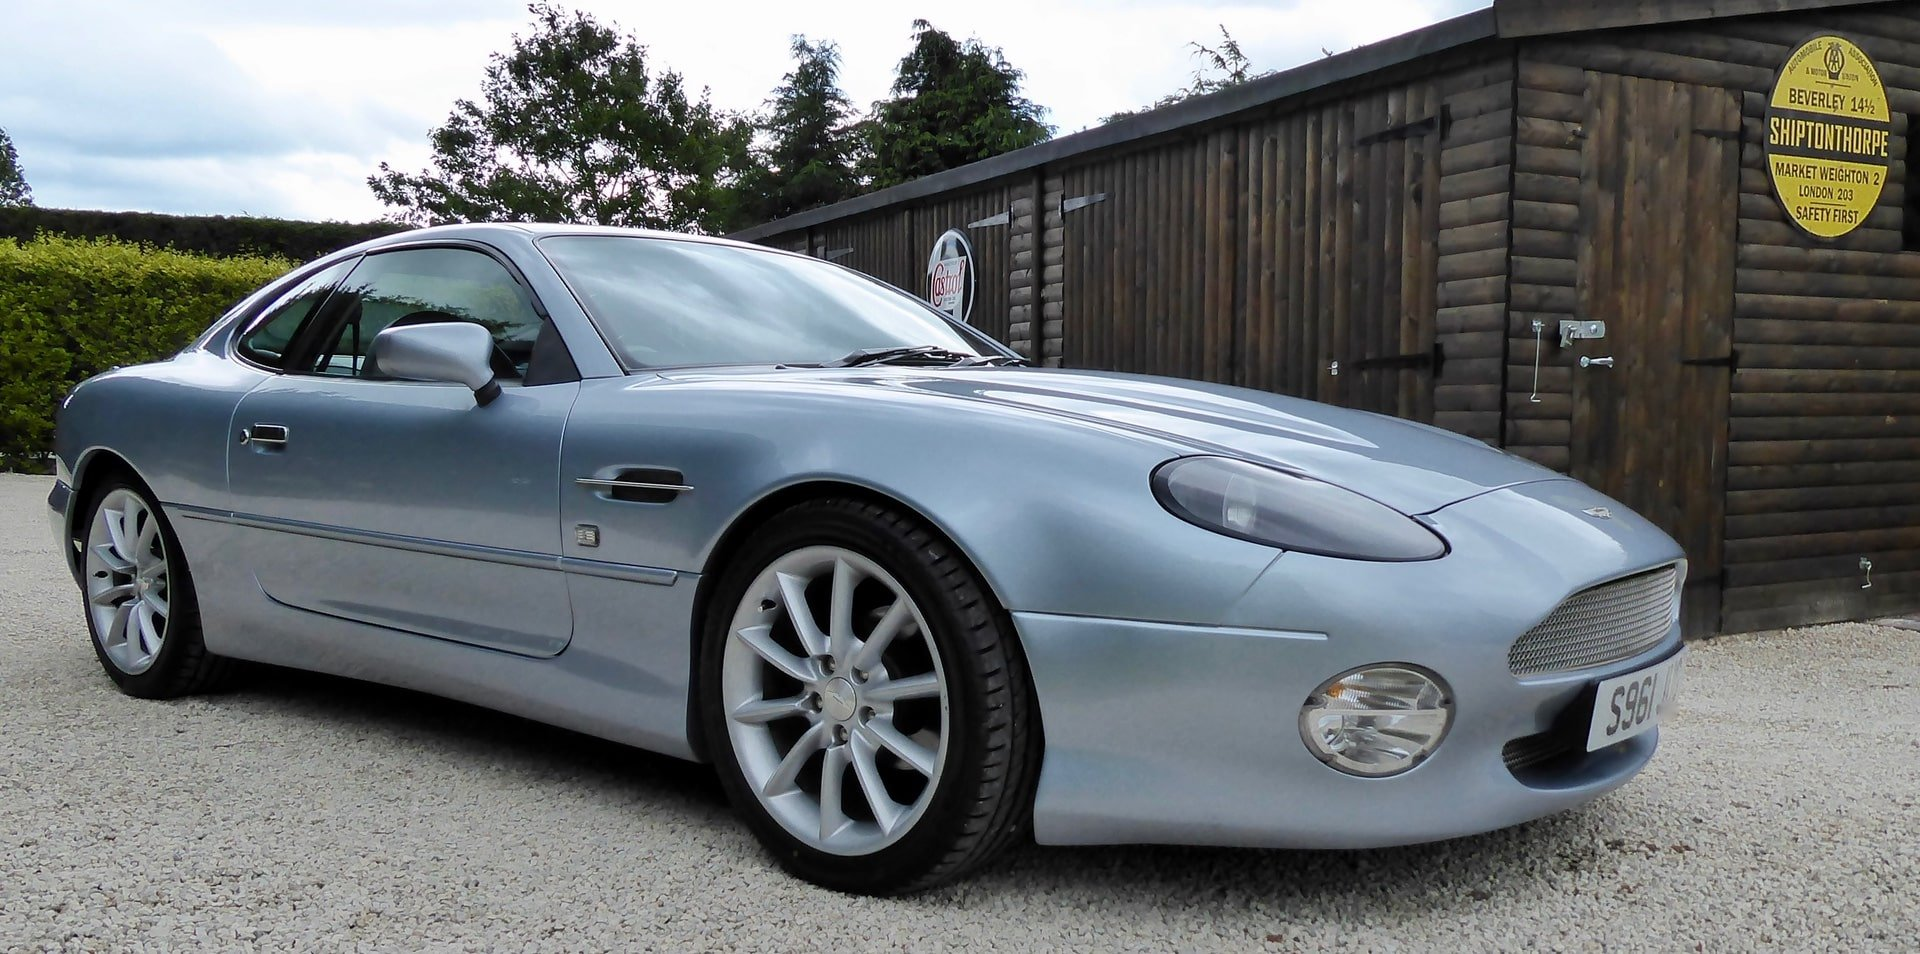 1998 Aston Martin DB7 SOLD (picture 1 of 6)